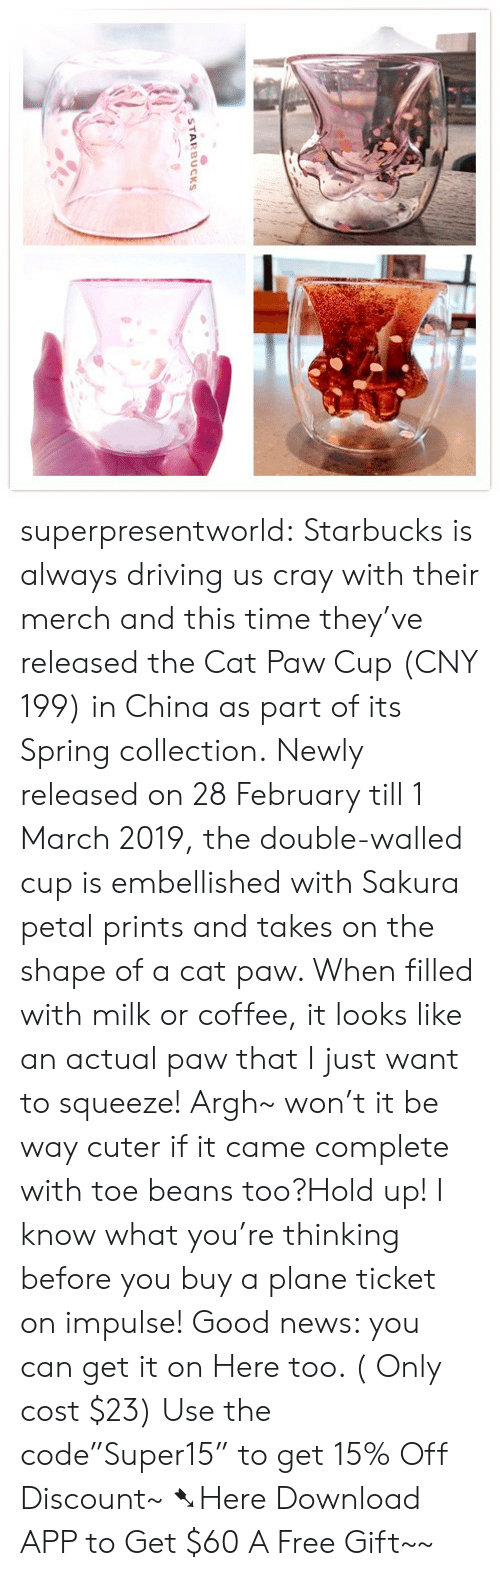 "Driving, News, and Starbucks: STARBUCKS superpresentworld: Starbucks is always driving us cray with their merch and this time they've released the Cat Paw Cup (CNY 199) in China as part of its Spring collection. Newly released on 28 February till 1 March 2019, the double-walled cup is embellished with Sakura petal prints and takes on the shape of a cat paw. When filled with milk or coffee, it looks like an actual paw that I just want to squeeze! Argh~ won't it be way cuter if it came complete with toe beans too?Hold up! I know what you're thinking before you buy a plane ticket on impulse! Good news: you can get it on Here too. ( Only cost $23) Use the code""Super15"" to get 15% Off Discount~ ➷Here Download APP to Get $60  A Free Gift~~"